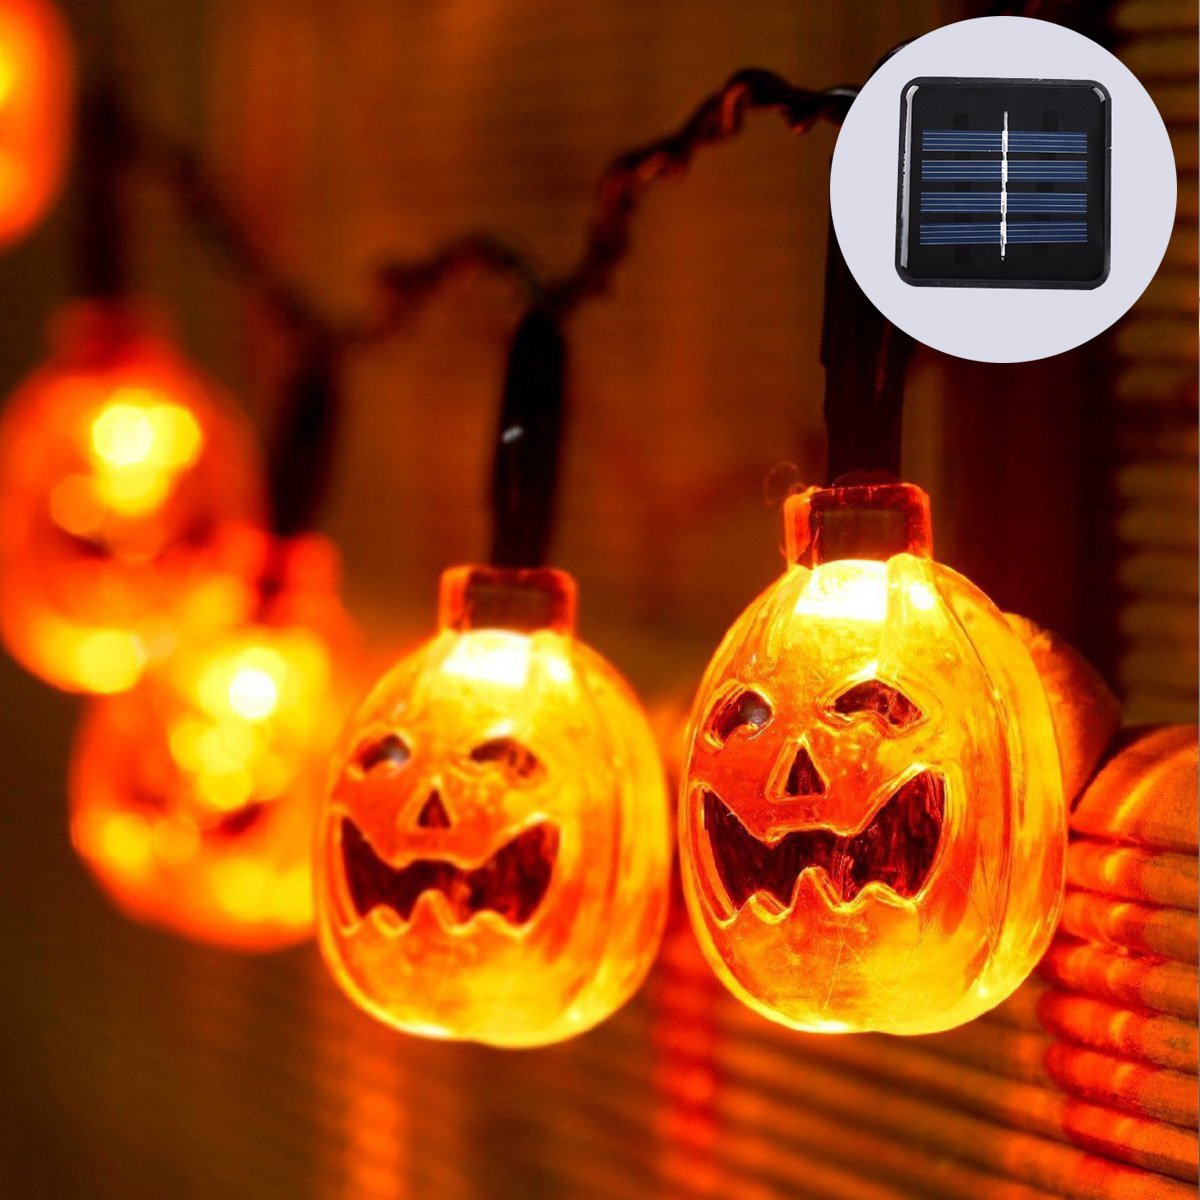 amazoncom jojoo solar powered 20 led 16ft pumpkin string lights 3d jack o lantern halloween decoration lights warm white lt019 patio lawn garden